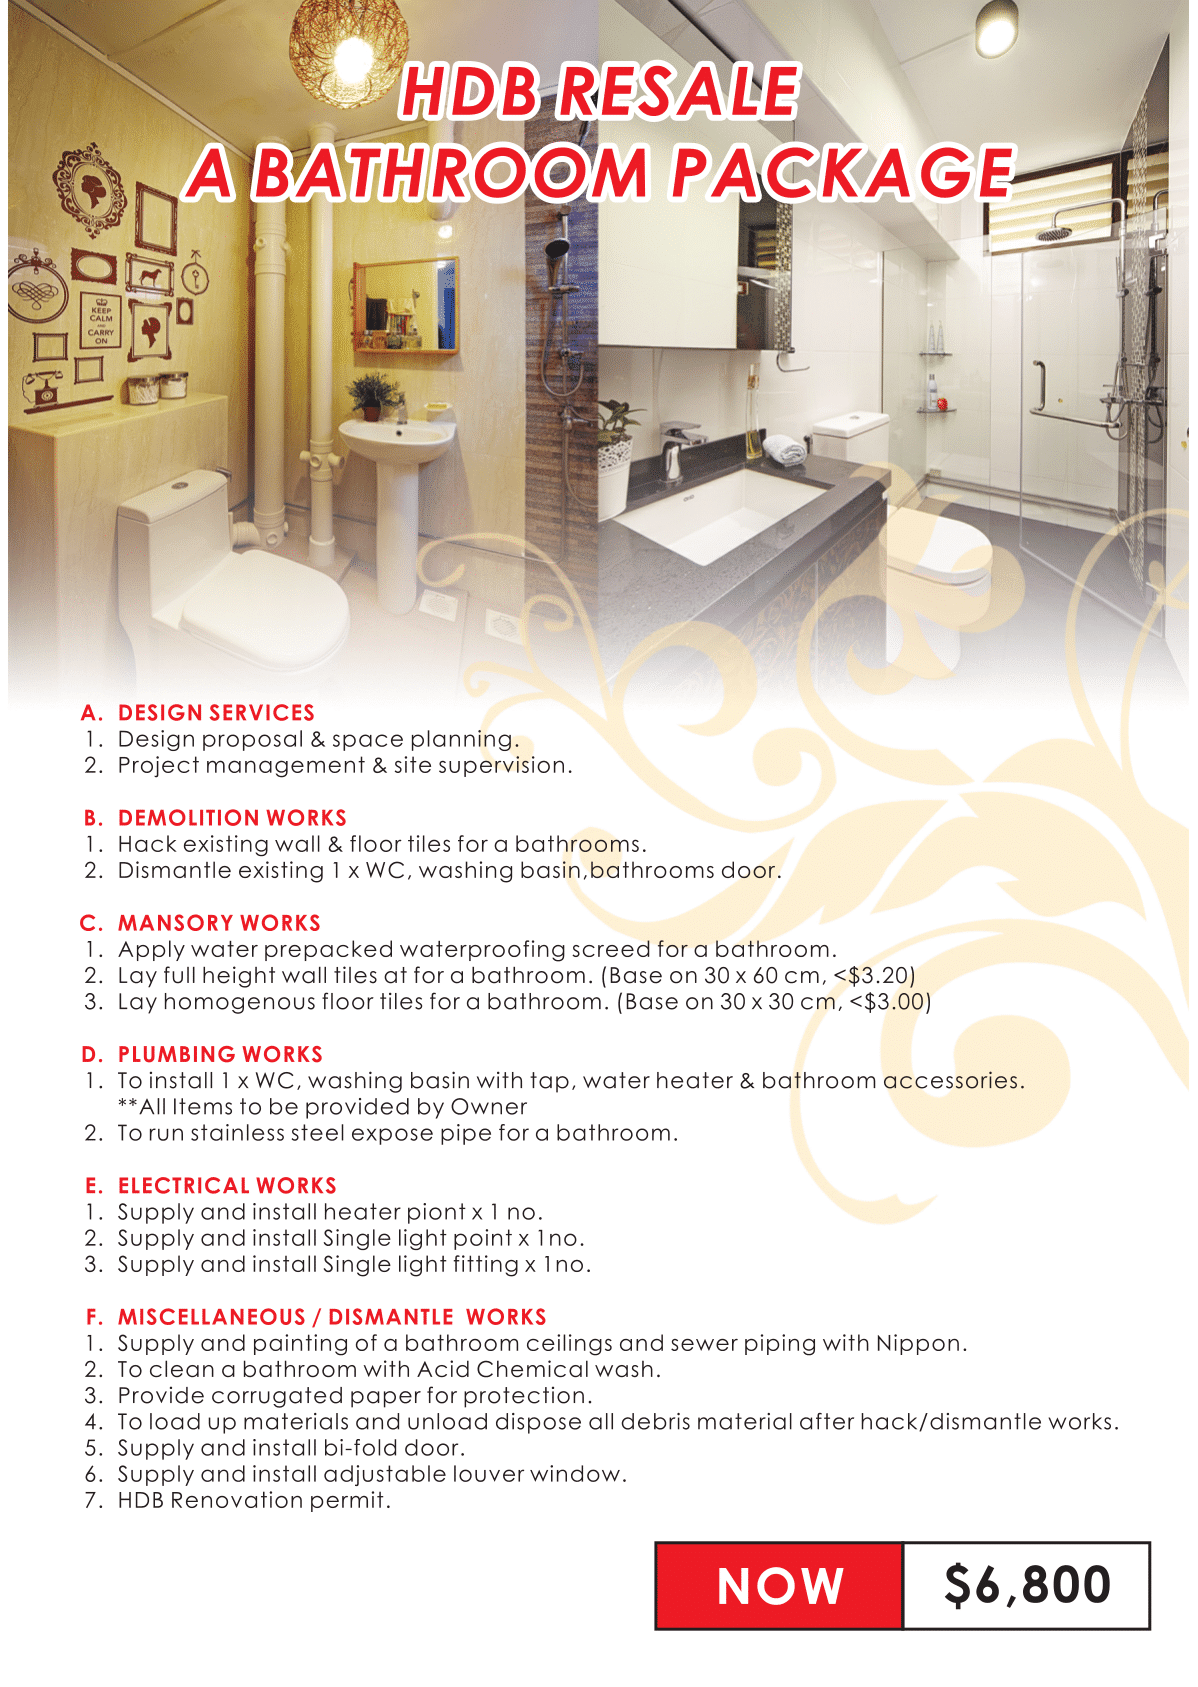 HDB-Resale-A-Bathroom-Package-1